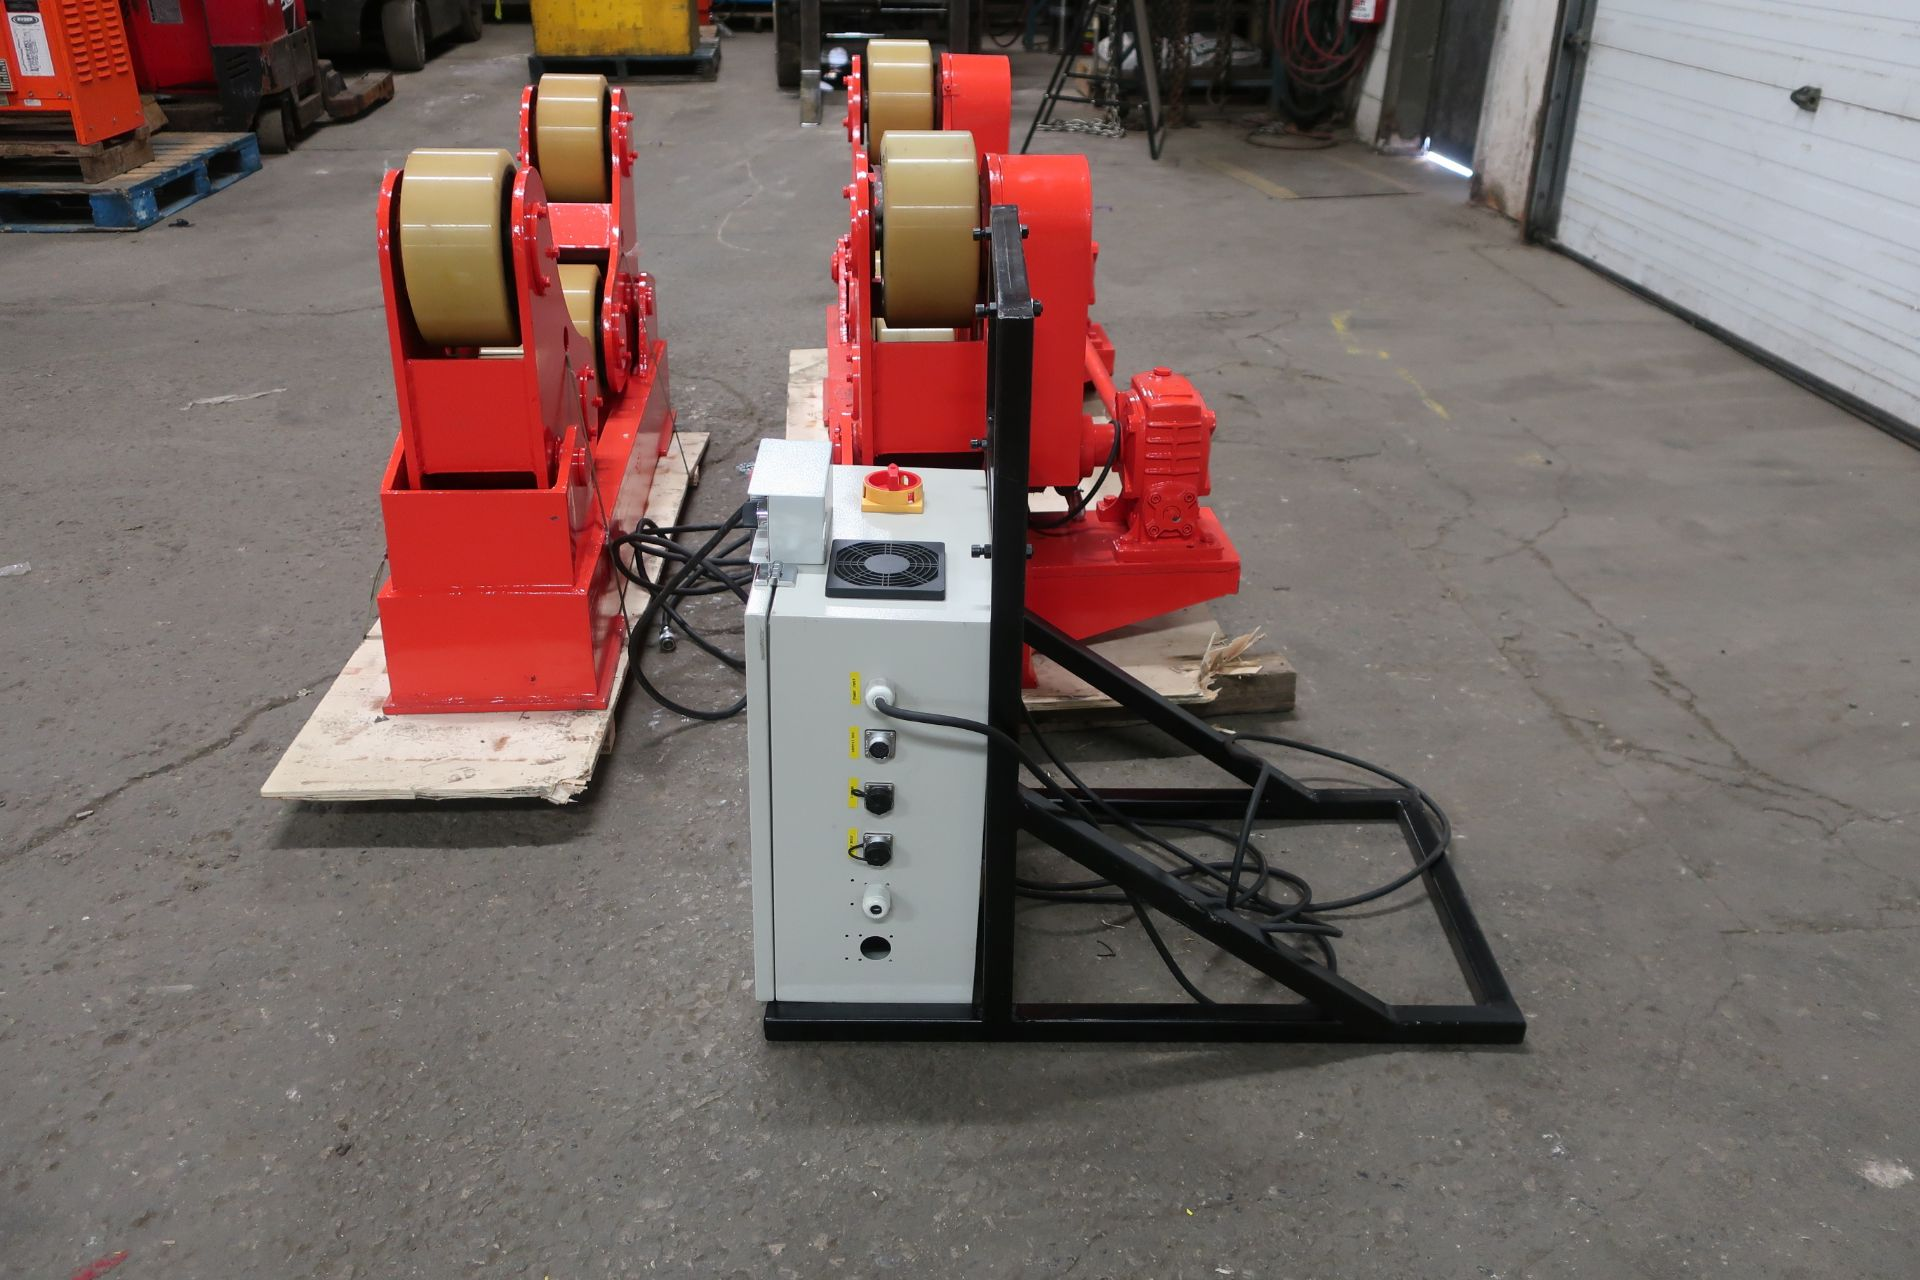 Verner Power tank rolls - Powered turning roll and idler 5TON or 10,000lbs capacity with wireless - Image 2 of 3